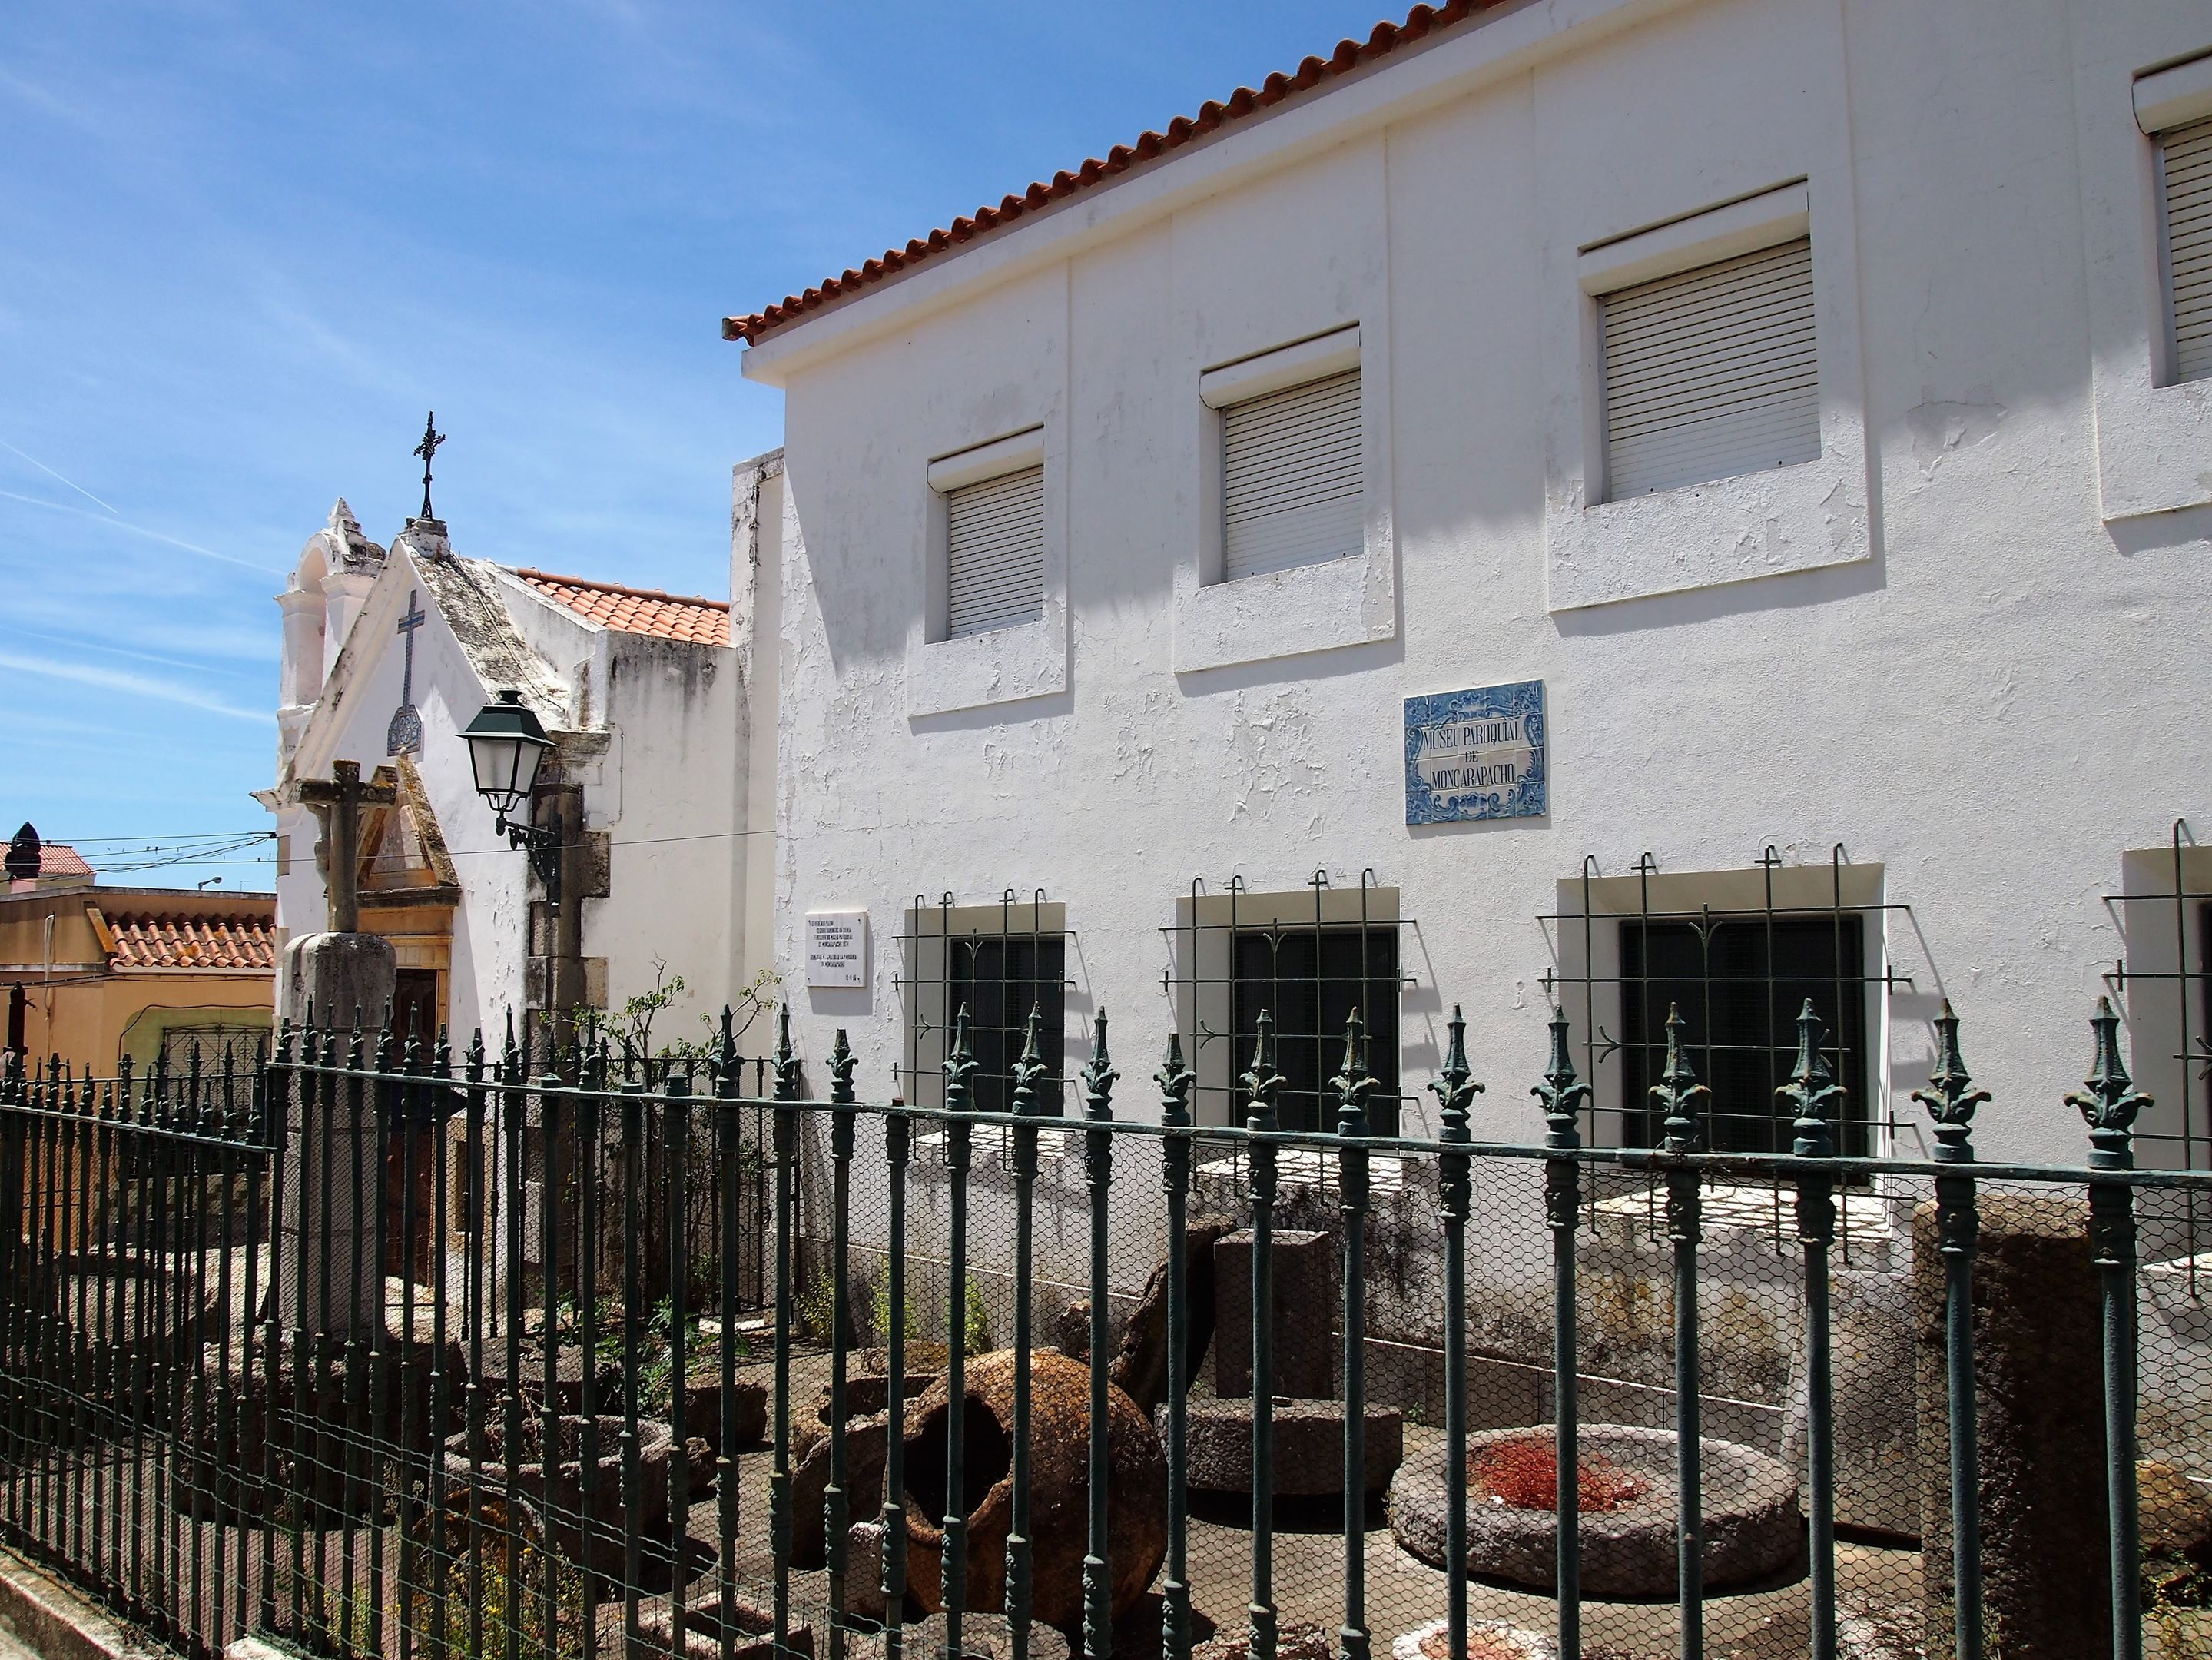 Museu Paroquial de Moncarapacho - the Parish Museum of Moncarapacho